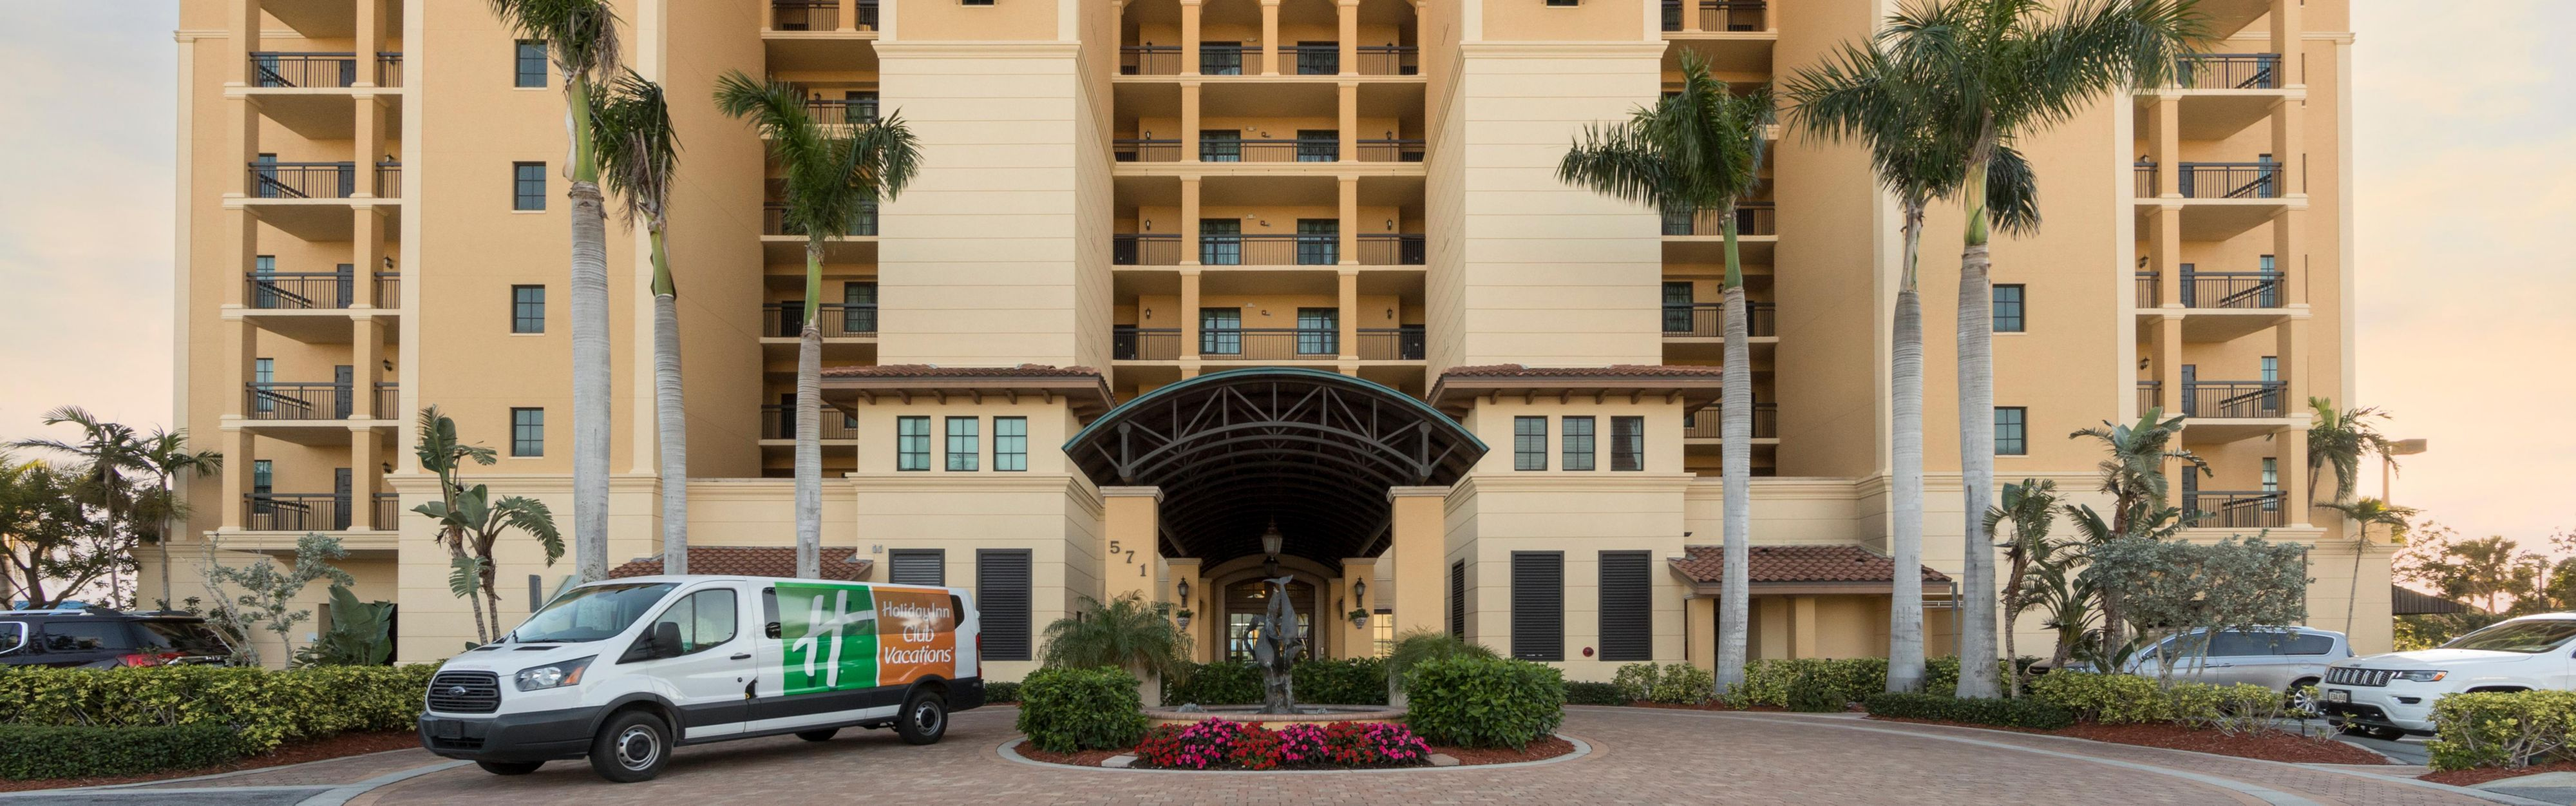 Welcome To Our Signature Collection At Sunset Cove Resort